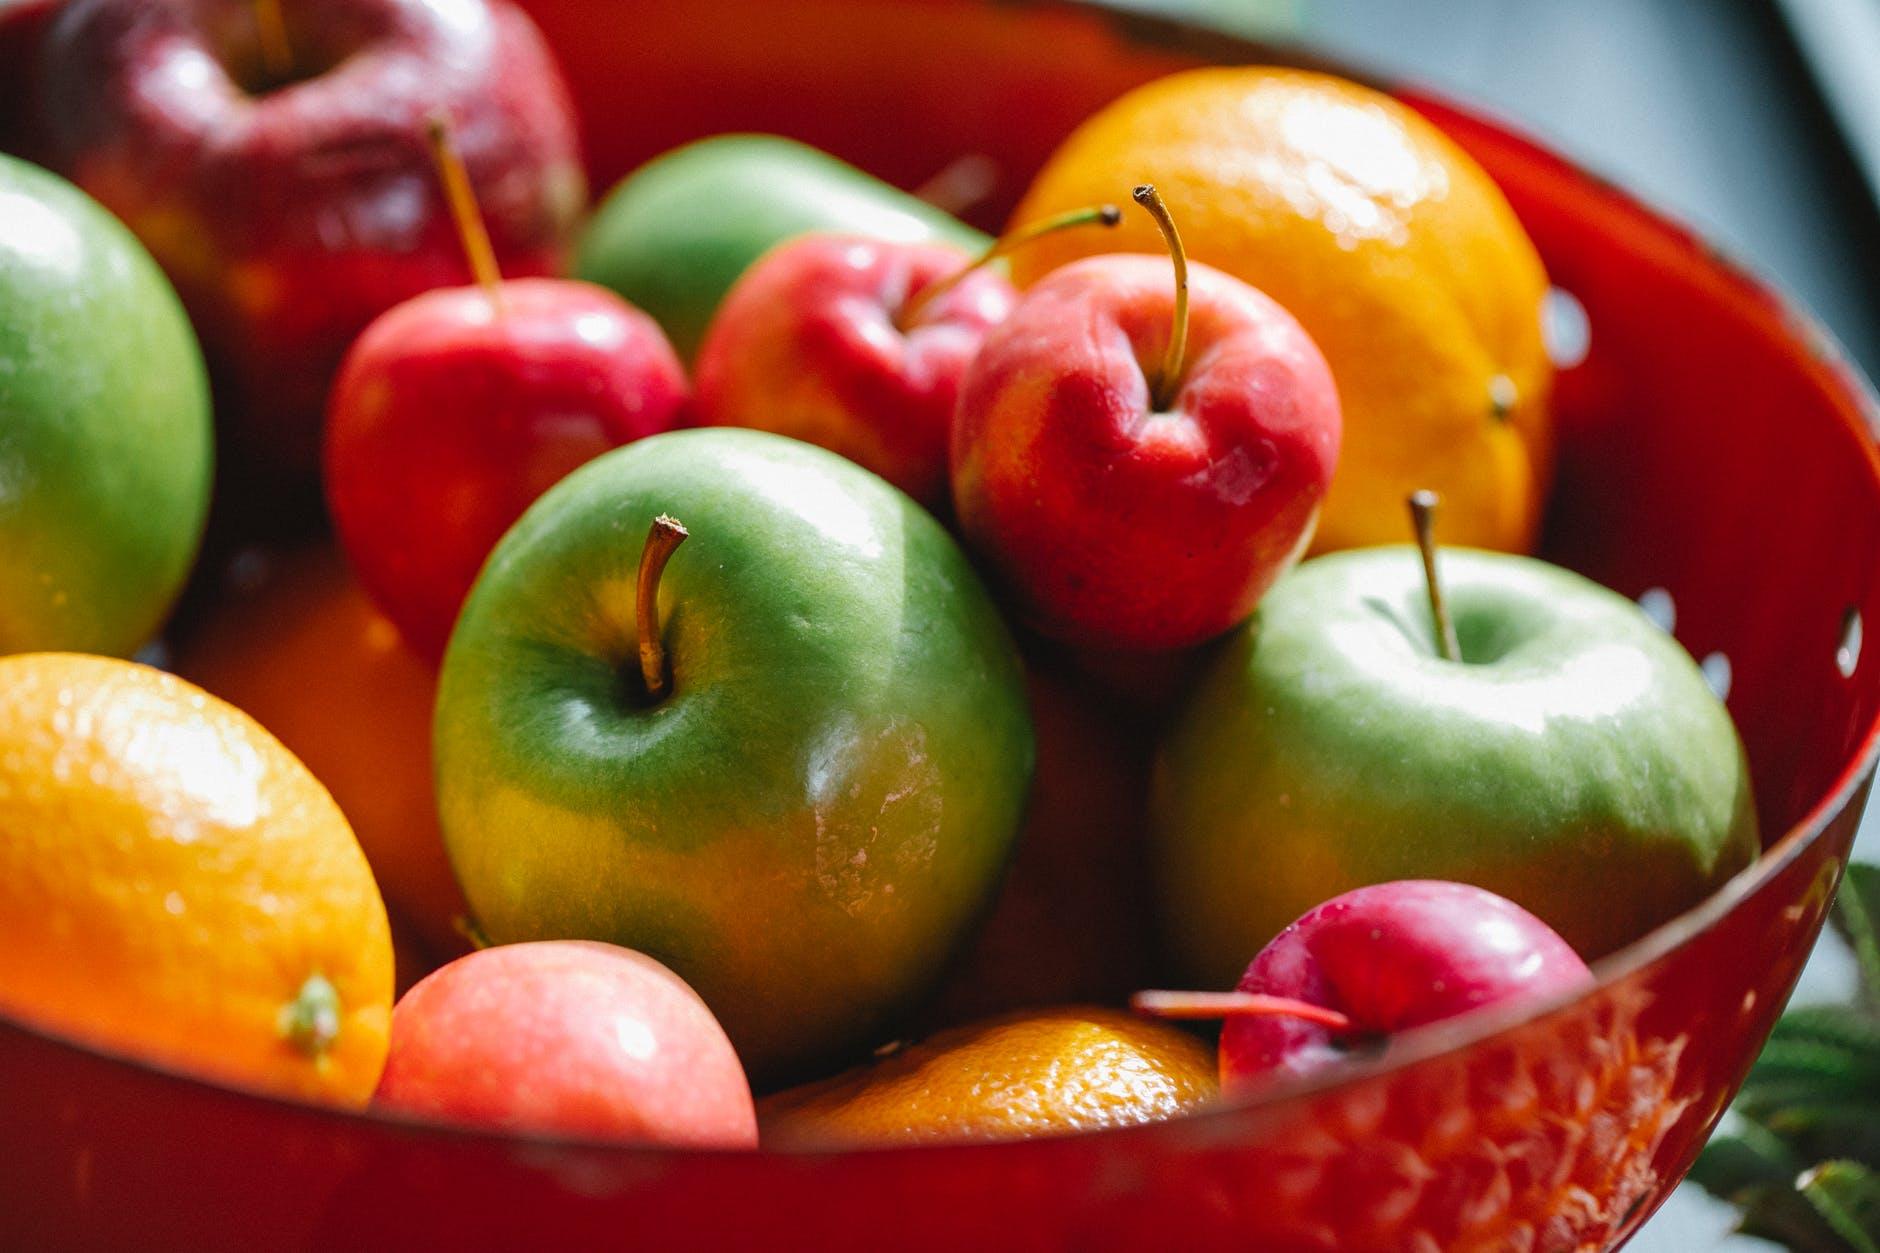 delicious multicolored apples and oranges with mandarins located in red bowl